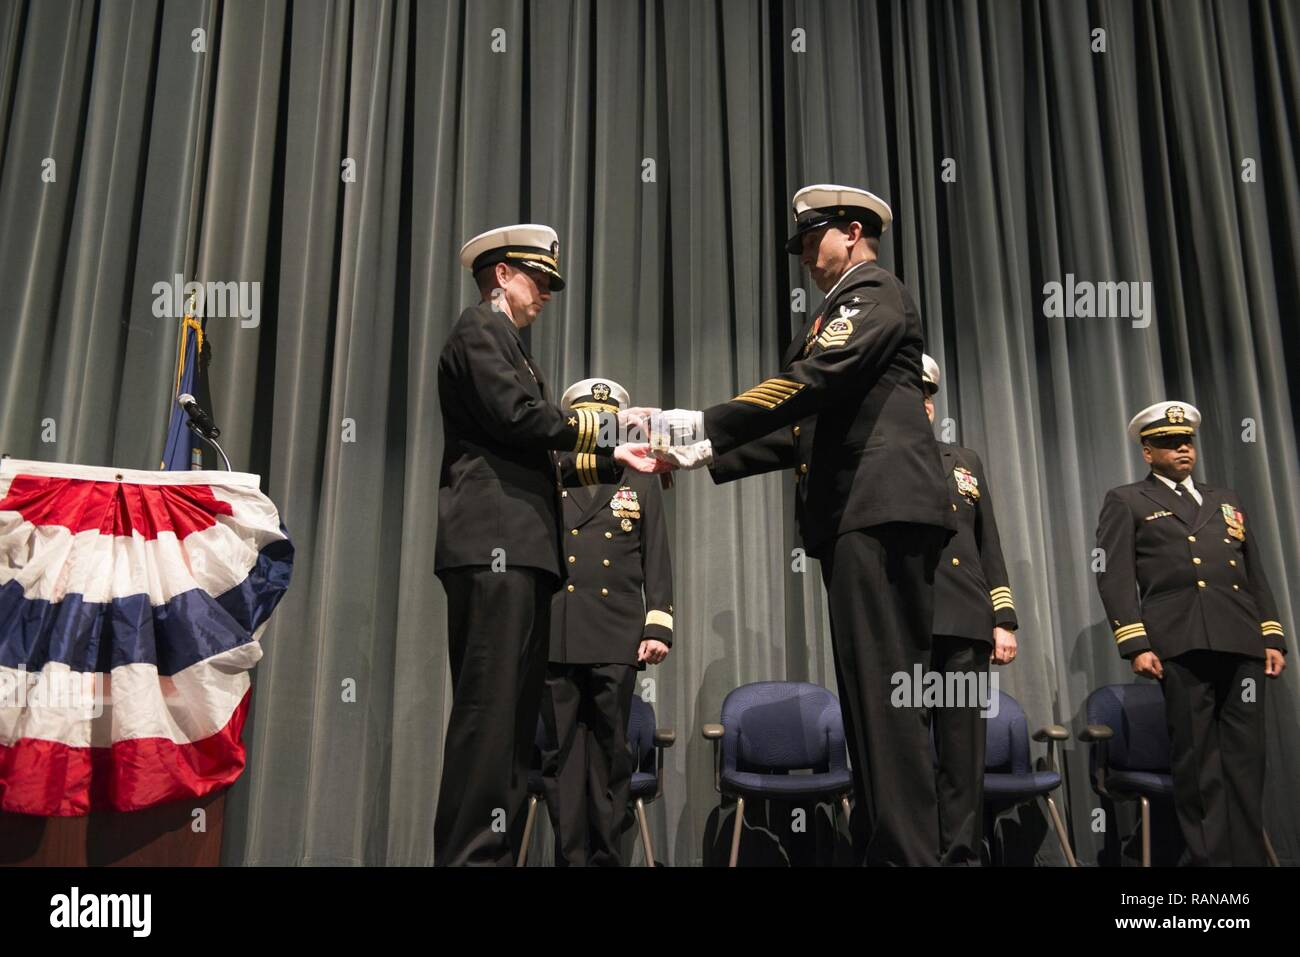 KEYPORT, Wash. (Feb. 27, 2017) Cmdr. Donald Tenney, left, commanding officer of the Los Angeles-class fast-attack submarine USS Albuquerque (SSN 706) is presented with Albuquerque's commissioning pennant by the Chief of the Boat, Senior Chief Sonar Technician Neal Bederson, during a decommissioning ceremony held at Keyport Undersea Museum. Albuquerque was commissioned May 21, 1983 at Naval Base New London in Groton, Connecticut. - Stock Image